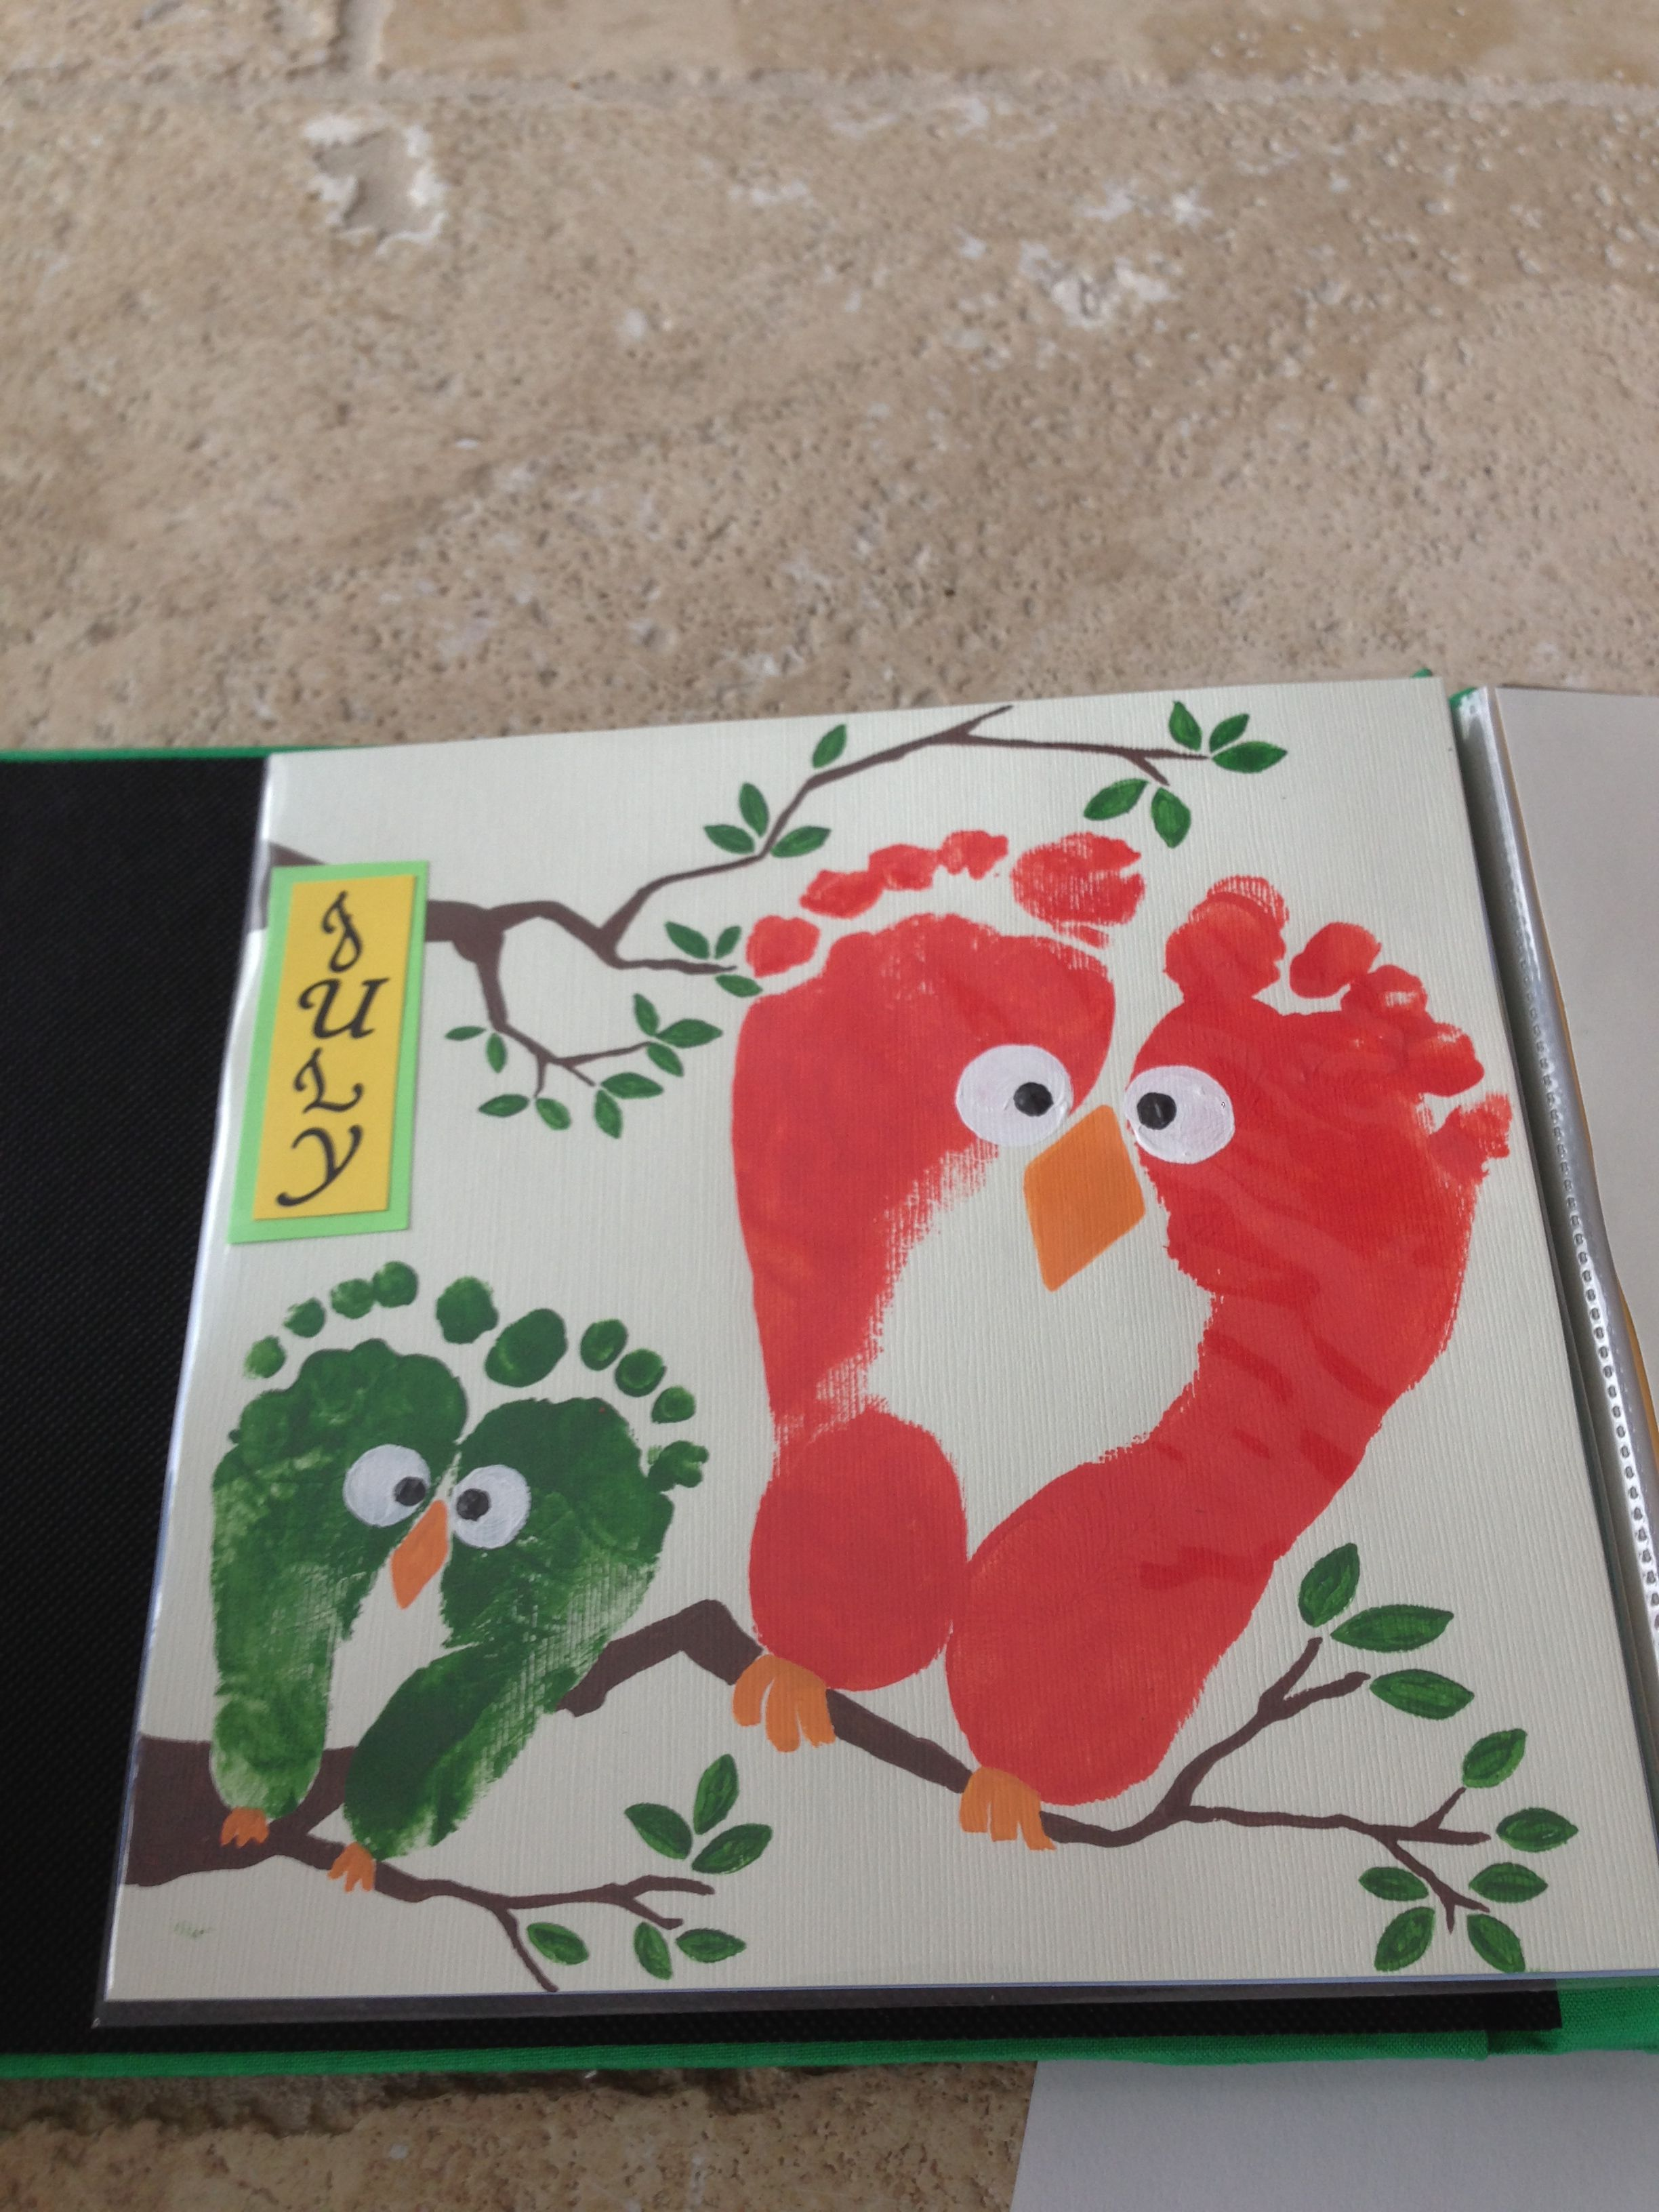 Arts and crafts prints - Owl Footprint Art Could Be Something The Owls Class Makes For Craft One